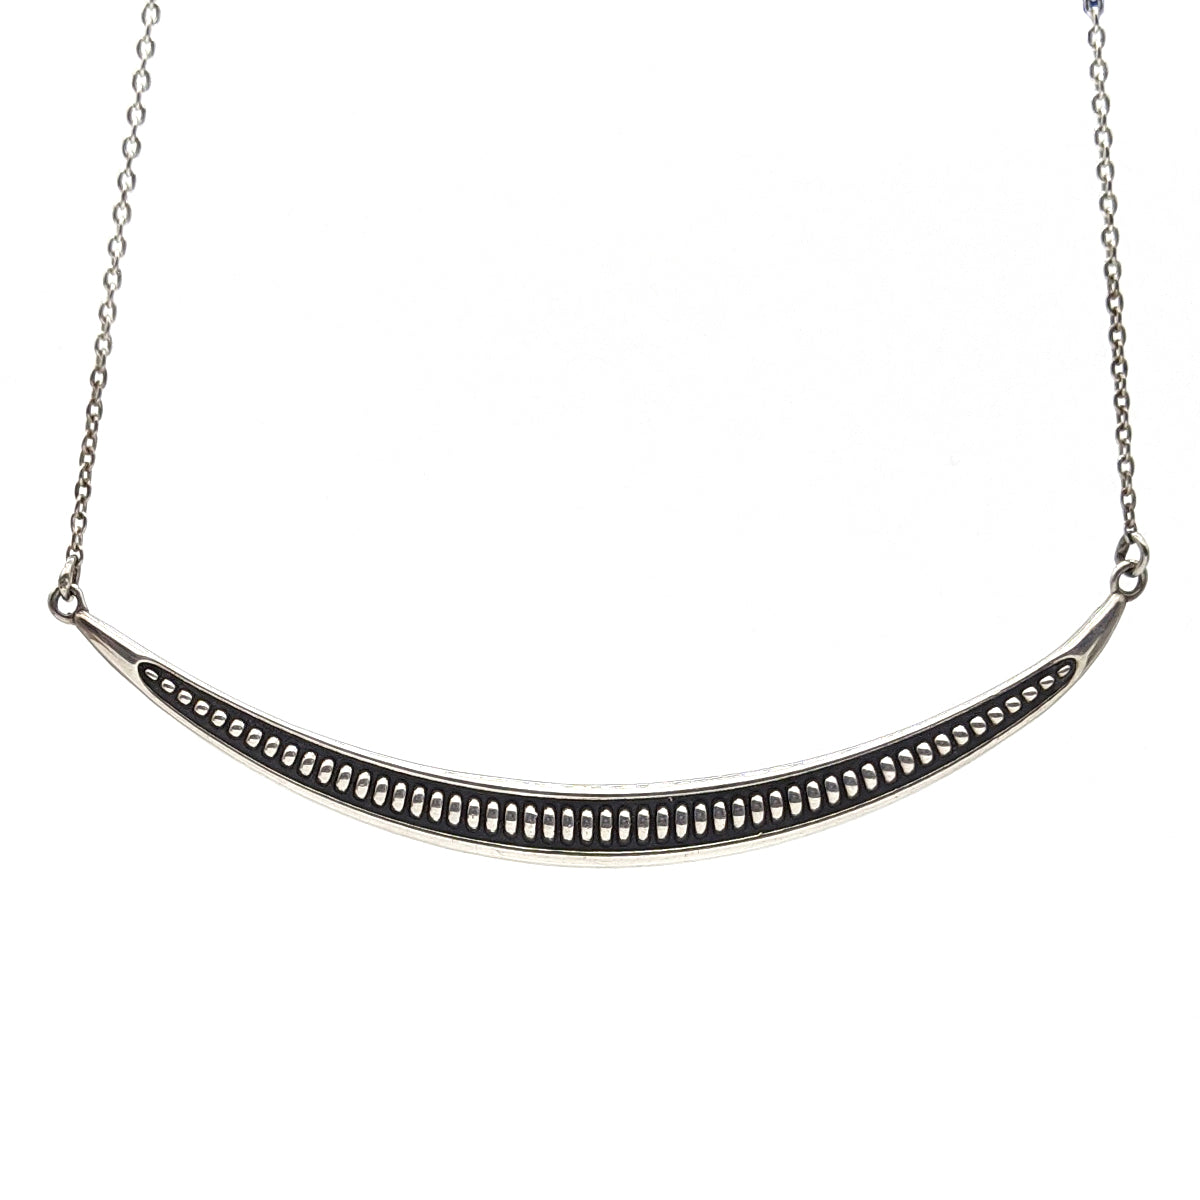 This is a sterling silver arc necklace that has a ribbed texture and a oxidized finish in the background to highlight that texture.